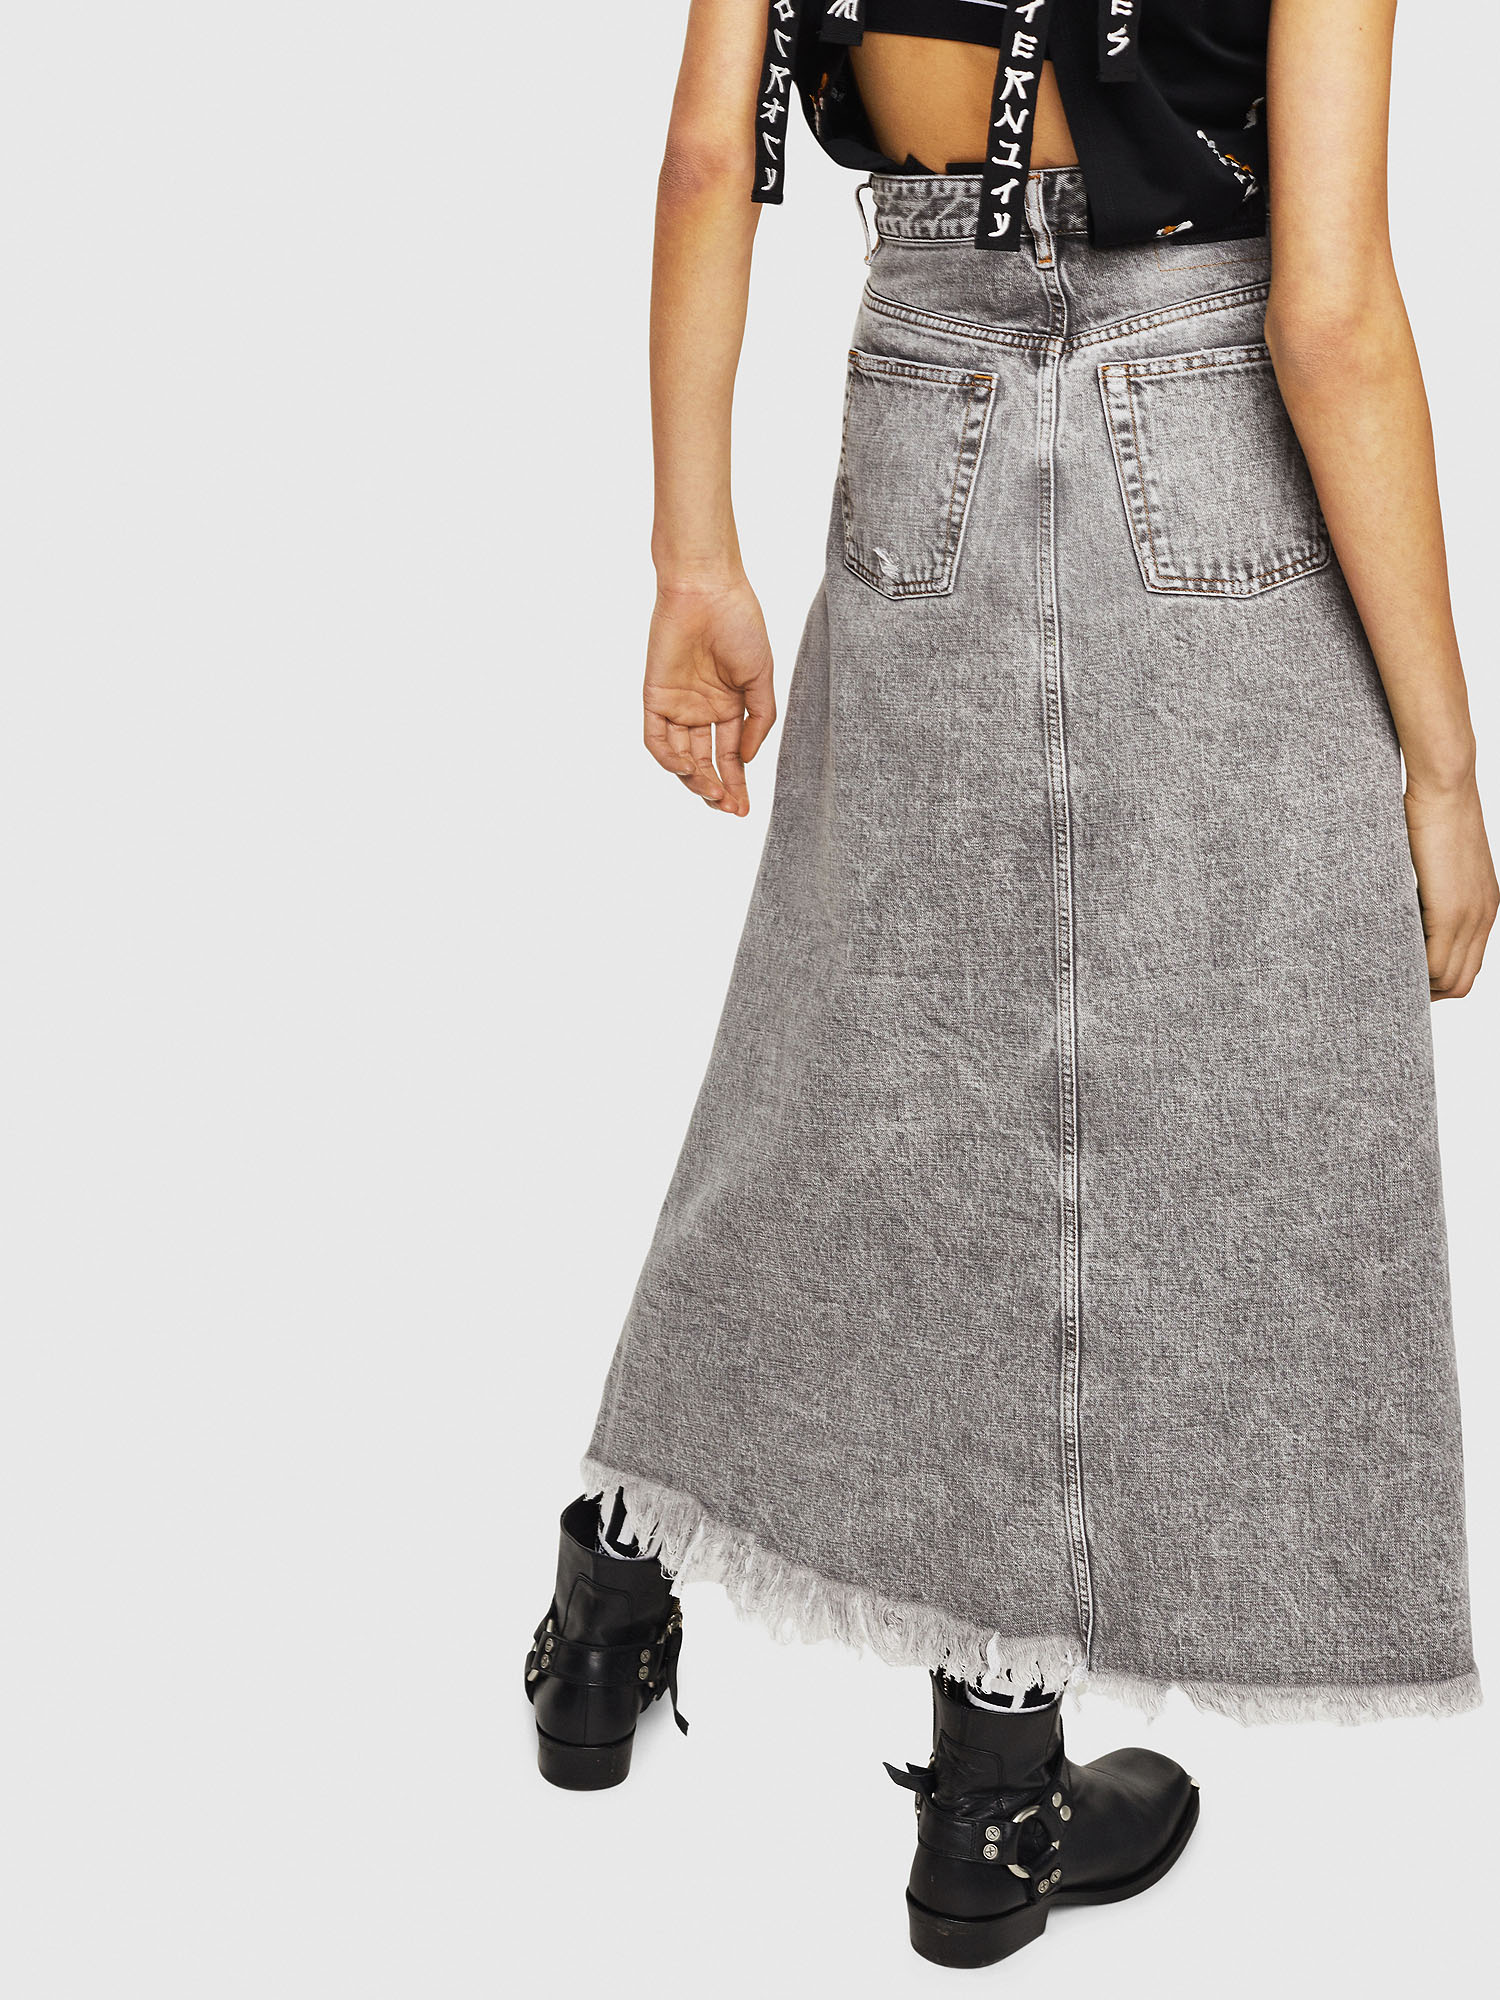 Diesel - DE-MARGY,  - Skirts - Image 2